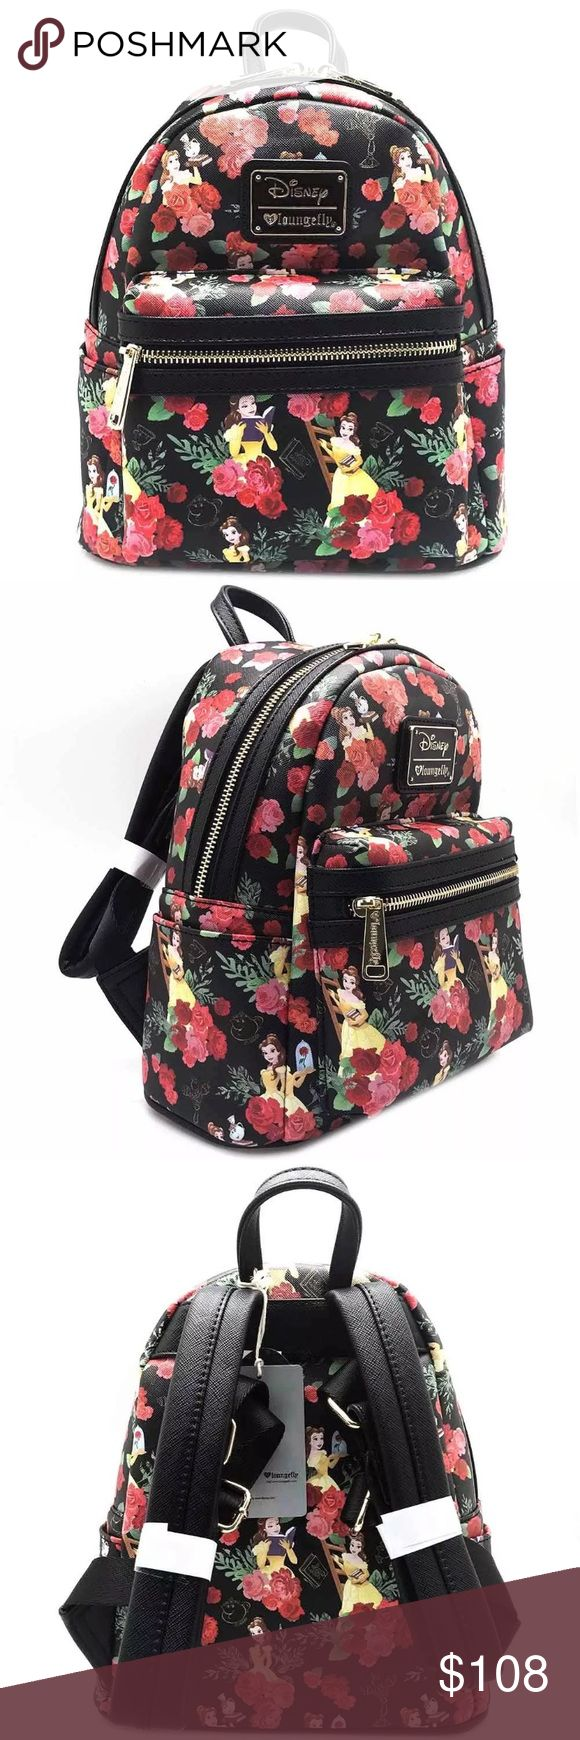 Belle All-Over-Print Mini Backpack from Loungefly. Make an offer on This romantic festival backpack features an all-over printed graphic of Disney Belle and her red rose on PU leather base, dual reinforced padded shoulder straps, top handle, front exterior zipped pocket, two side exterior pockets, fully lined interior, and top zip closure. loungefly Bags Backpacks